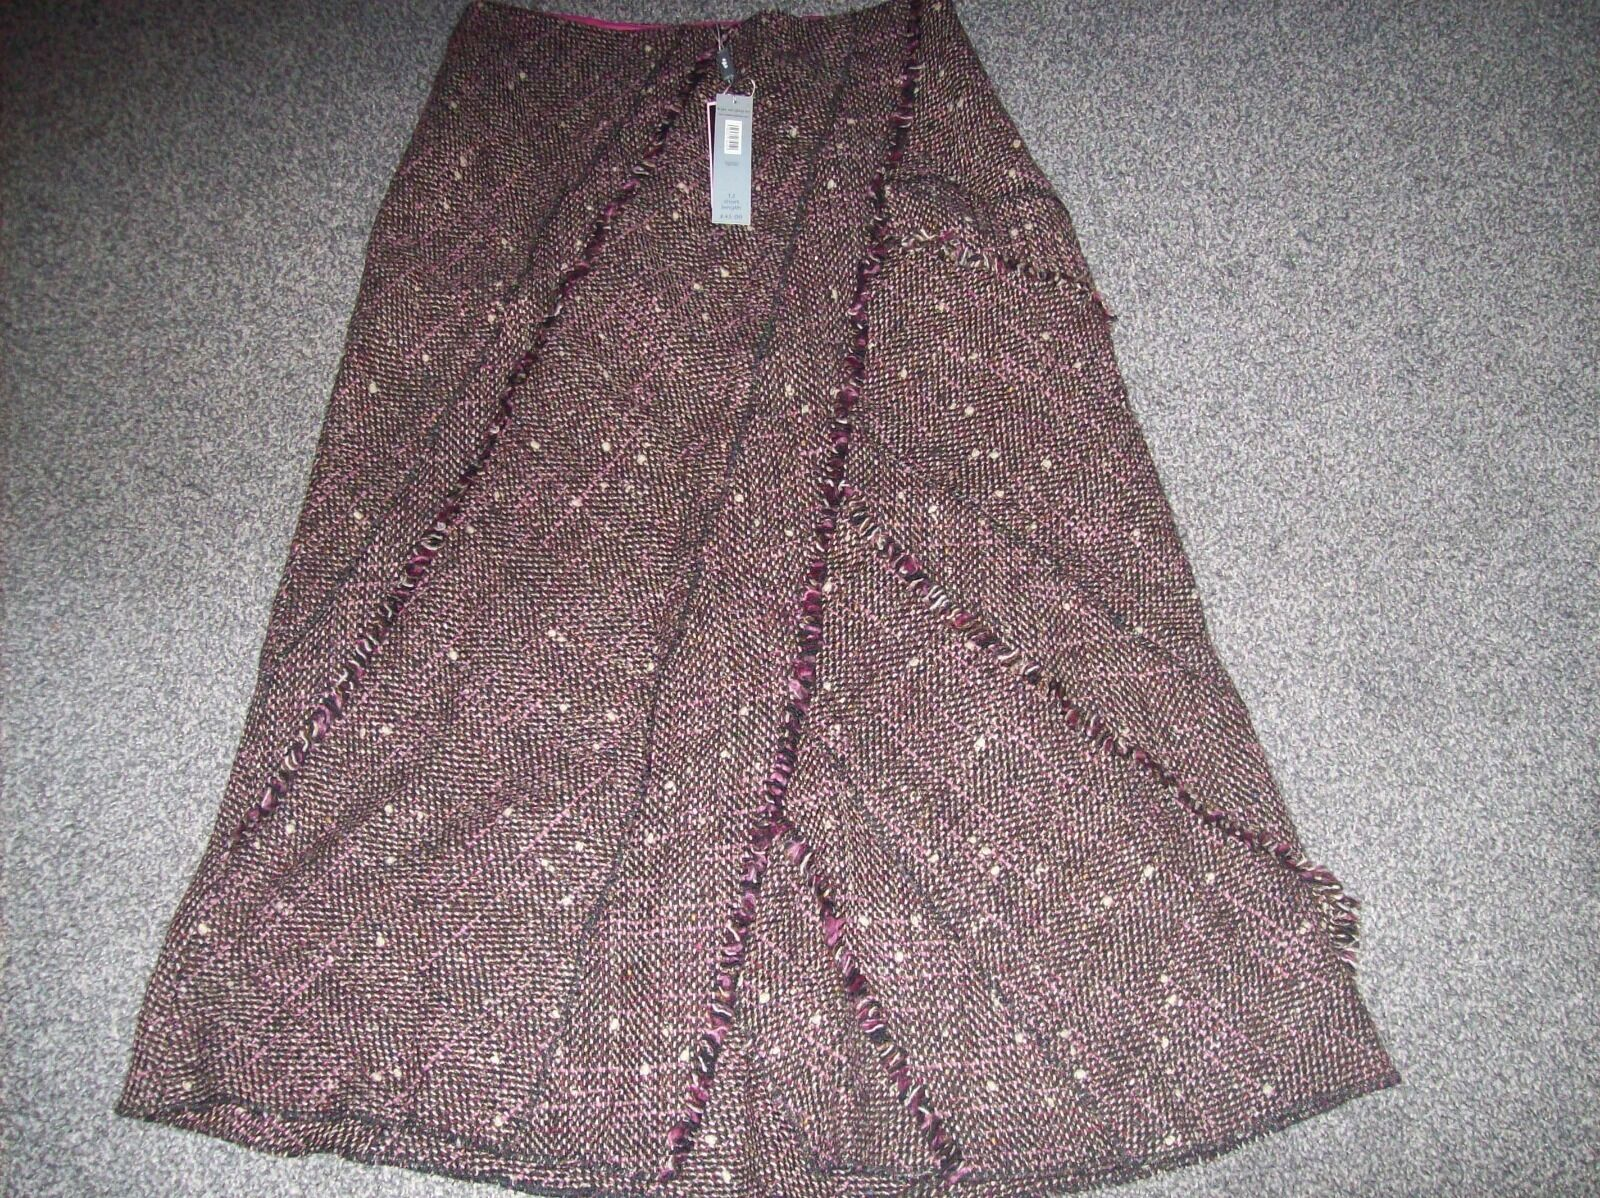 STUNNING HEAVY WOOL MIX SKIRT FROM PER UNA...BNWT..OF ...SIZE 12